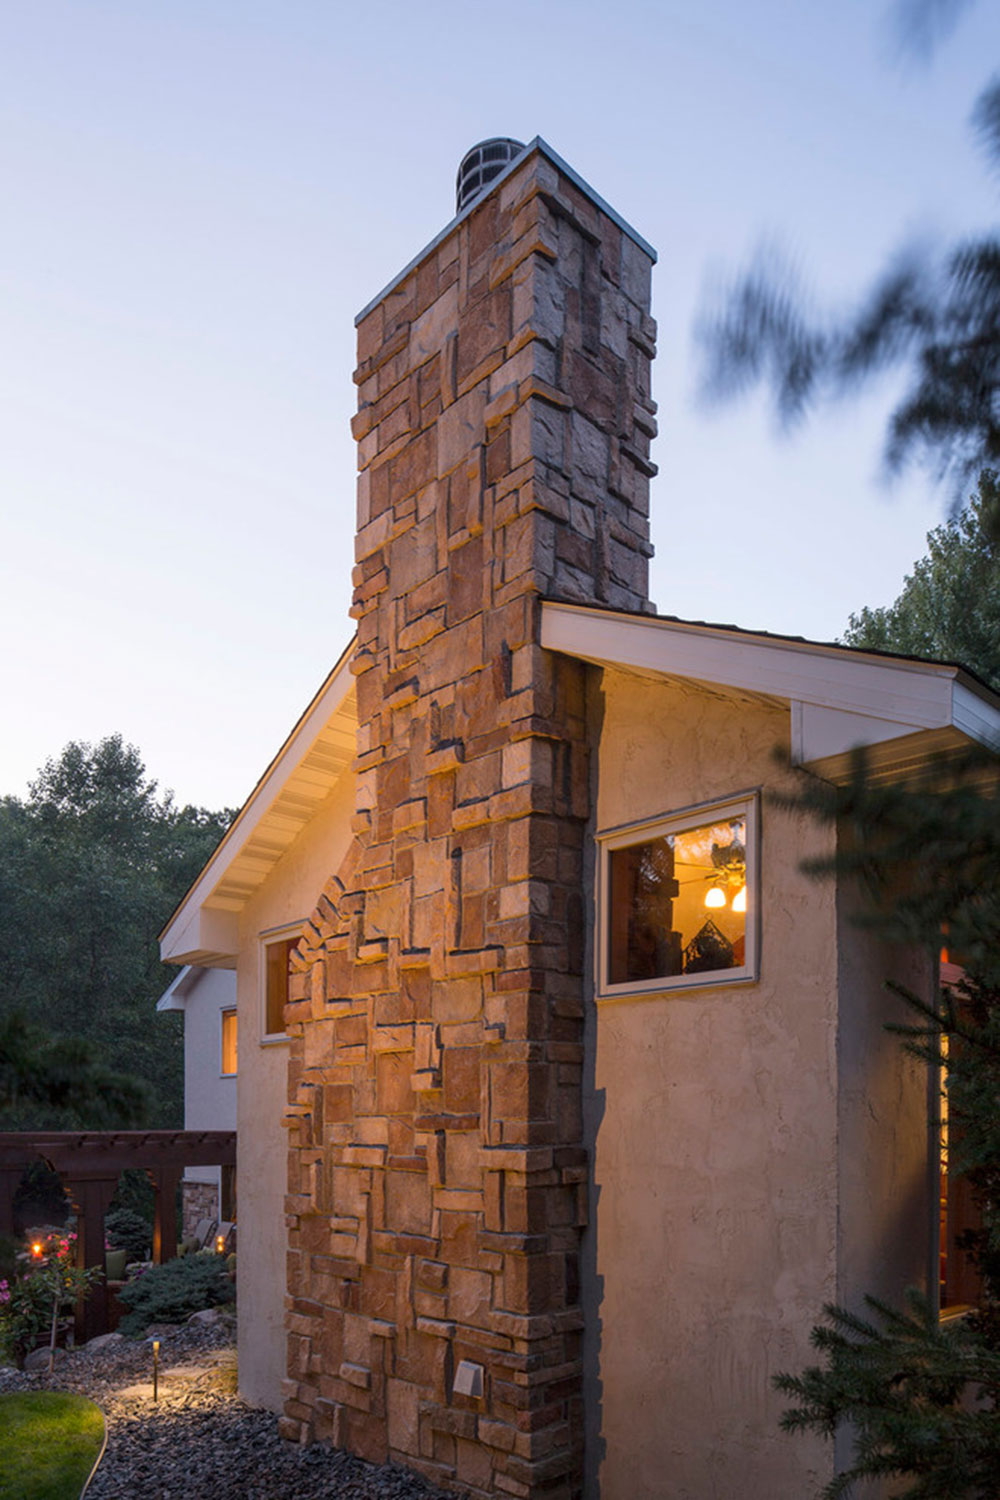 Minnetonka-by-LandR-Suburban-Landscaping-Inc How to remove a chimney when you no longer need it